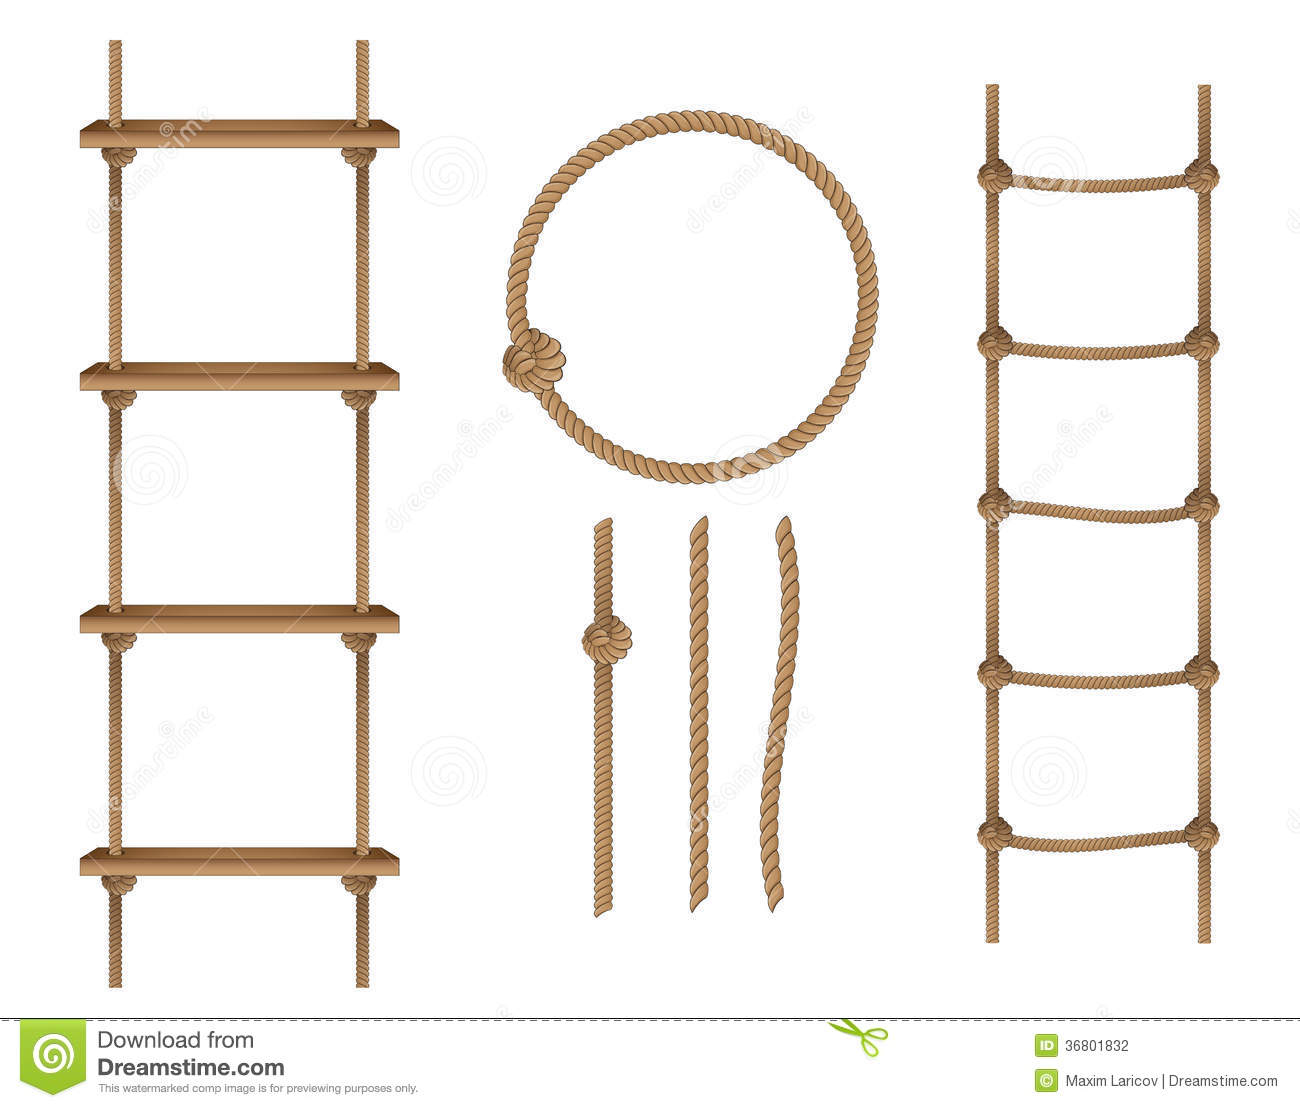 HQ Rope Ladder Wallpapers | File 104.65Kb